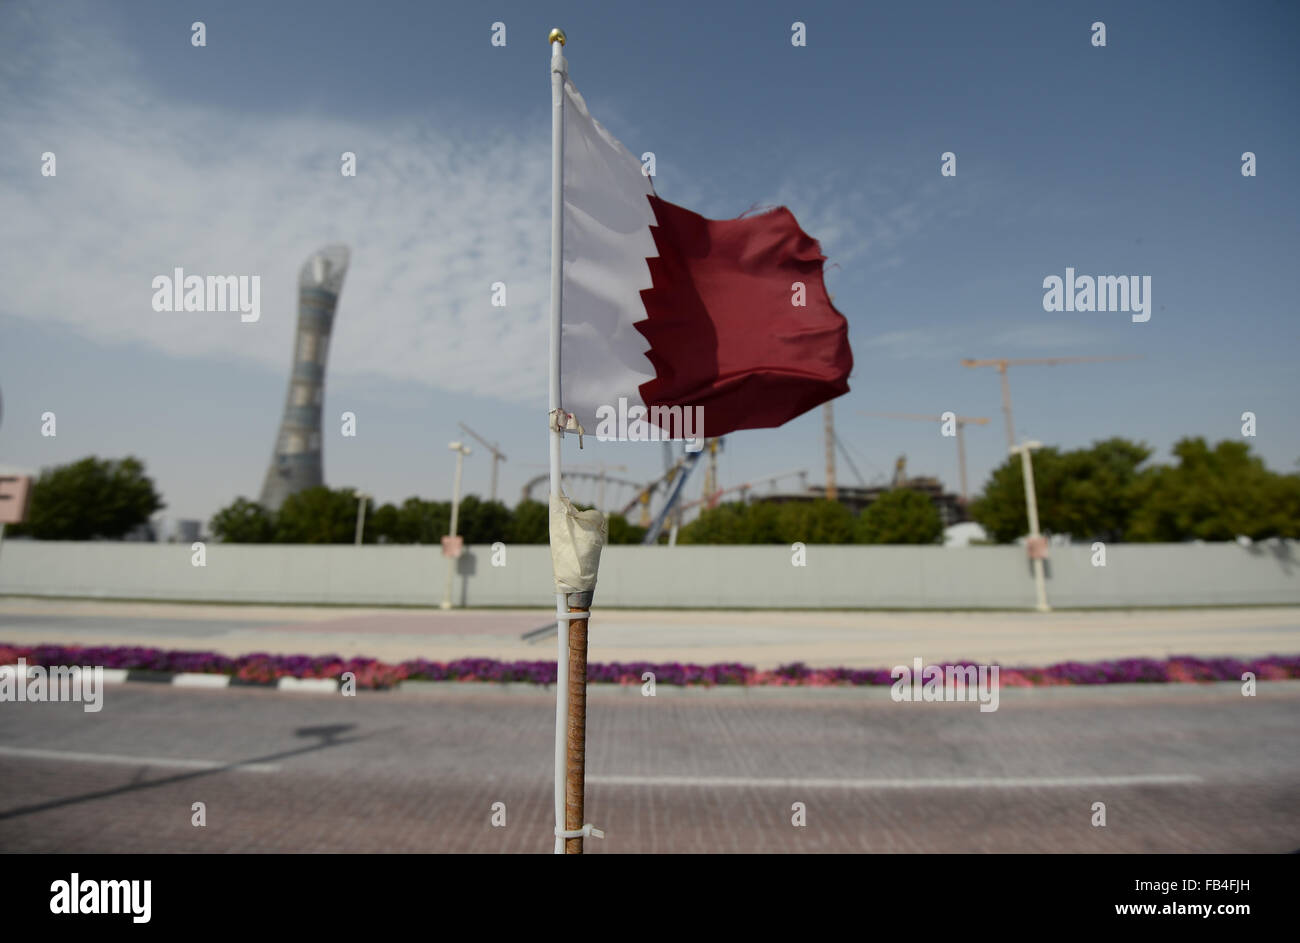 Quinti Sedute Highway 2022 Background Immagini 2022 Background Fotos Stock Alamy